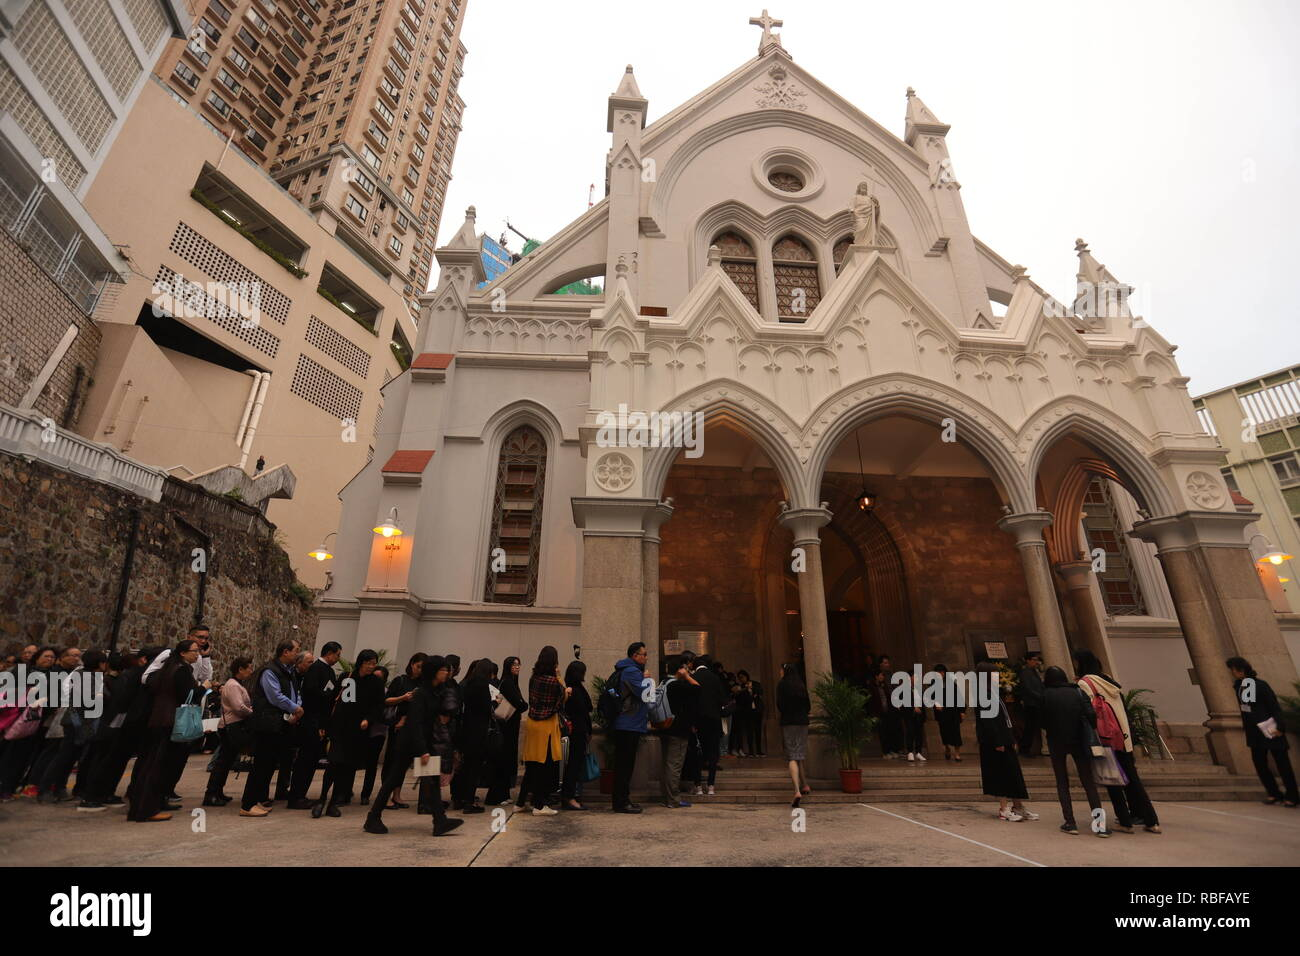 Hong Kong, CHINA. 10th Jan, 2019. Hong Kong Catholics queue up to enter Church of the Immaculate Conception where Reception of the Body of the late Bishop Michael Yeung is held today.Jan-10, 2019 Hong Kong.ZUMA/Liau Chung-ren Credit: Liau Chung-ren/ZUMA Wire/Alamy Live News Stock Photo